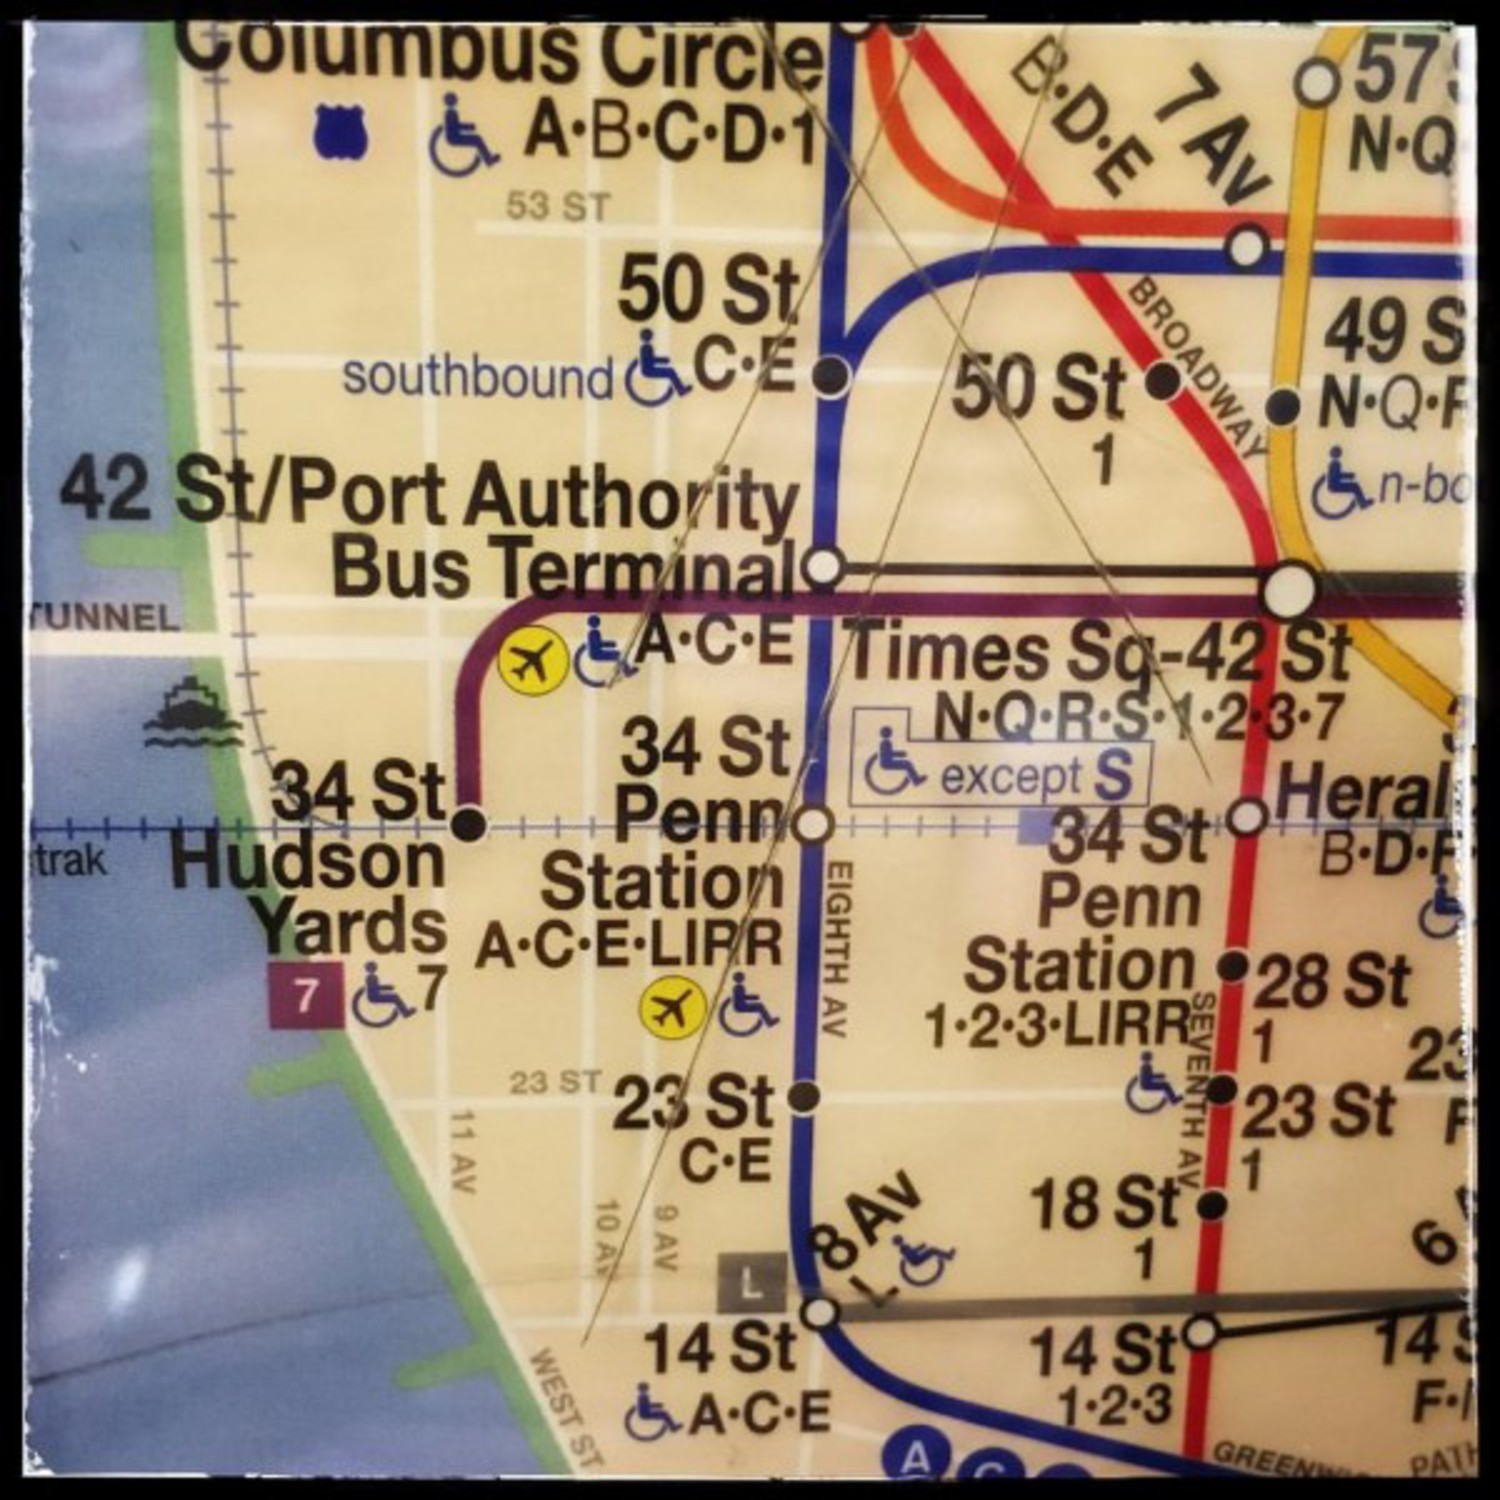 Ny Subway Map 7 Train.Mta Subway Maps Updated To Reflect New 34th St Hudson Yards